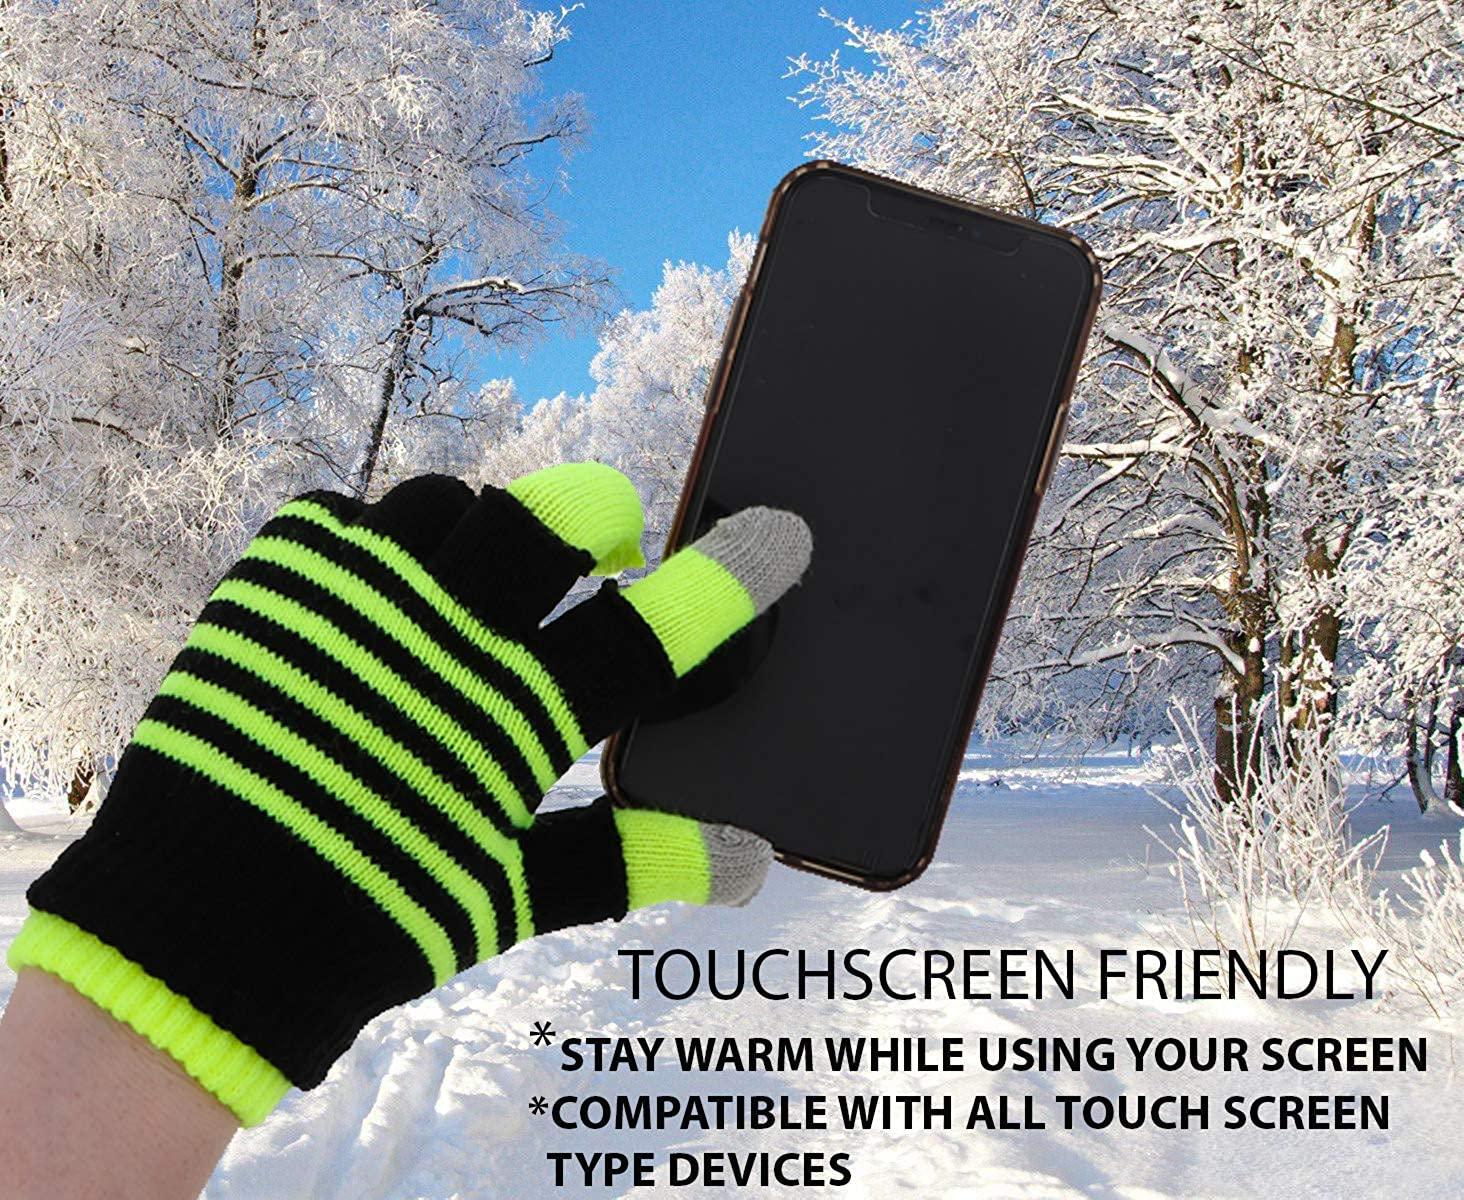 Knit Fingerless and Regular Touchscreen Ladies Gloves Neon Stripes - 2 in 1